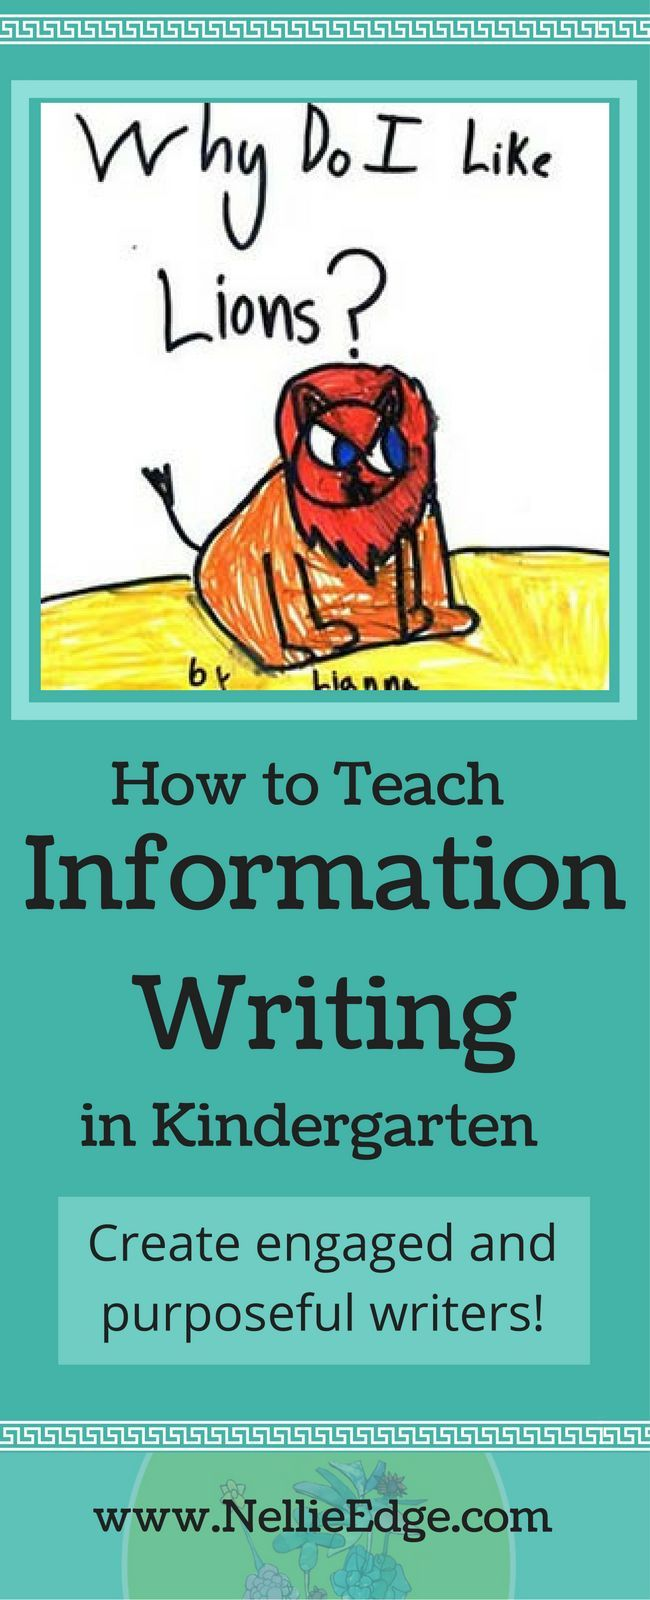 Boost kindergarten Information Writing proficiency! View this sequence of lessons and practical strategies to grow kindergarten writers. Nonfiction studies inspire students' writing, building motivation and stamina for ANY writing workshop model. See documented student writing samples that build and motivation for ANY writing workshop model at http://nellieedge.com/writing/information-writing-kindergarten/ | Information writing + writing workshop + nonfiction